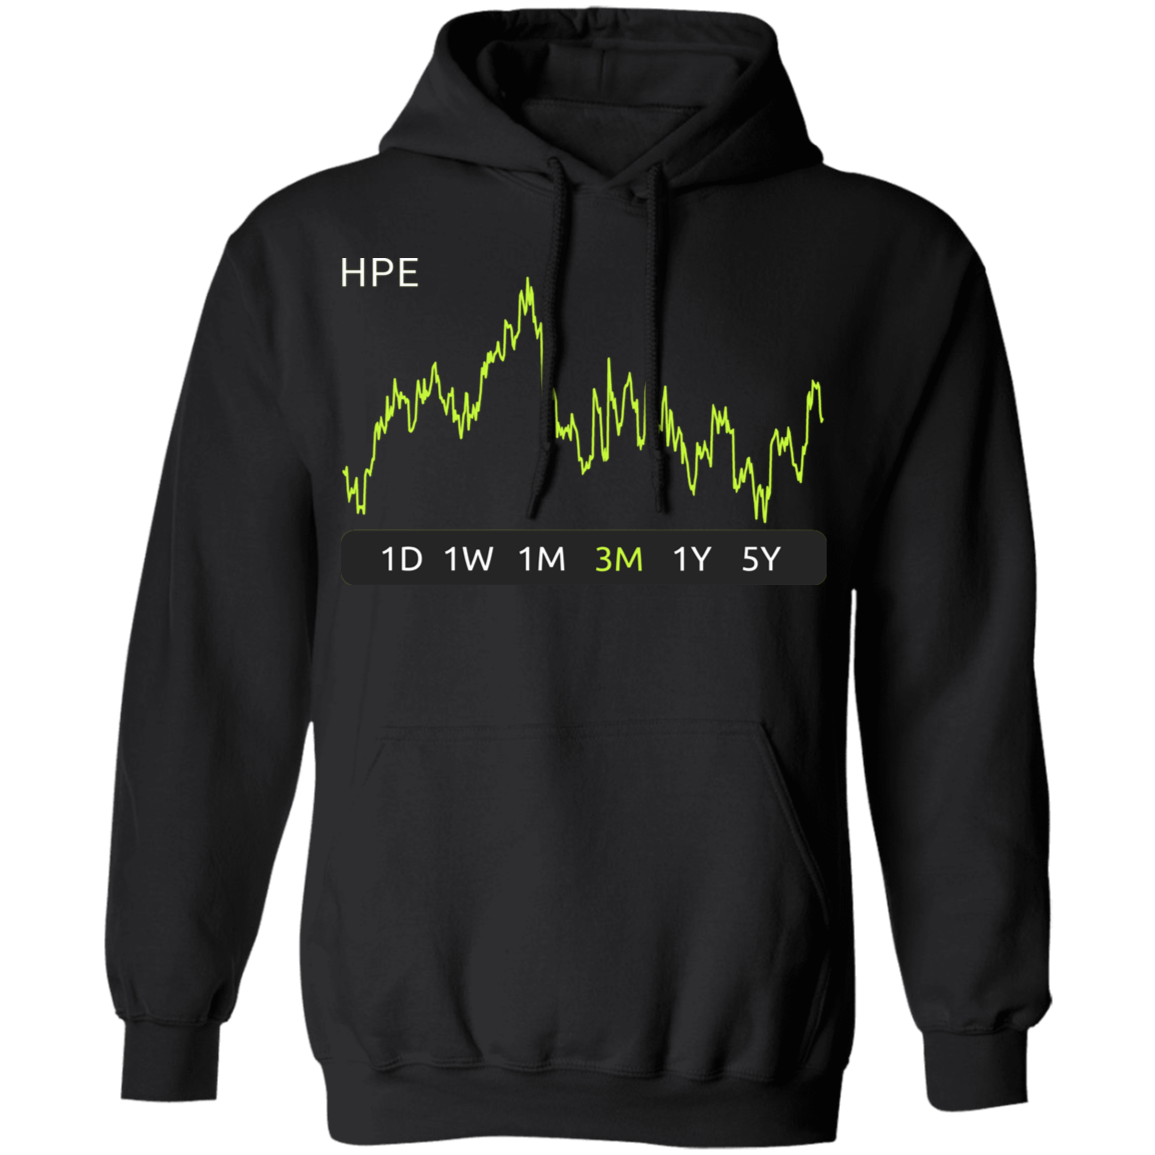 HPE Stock 3m Pullover Hoodie